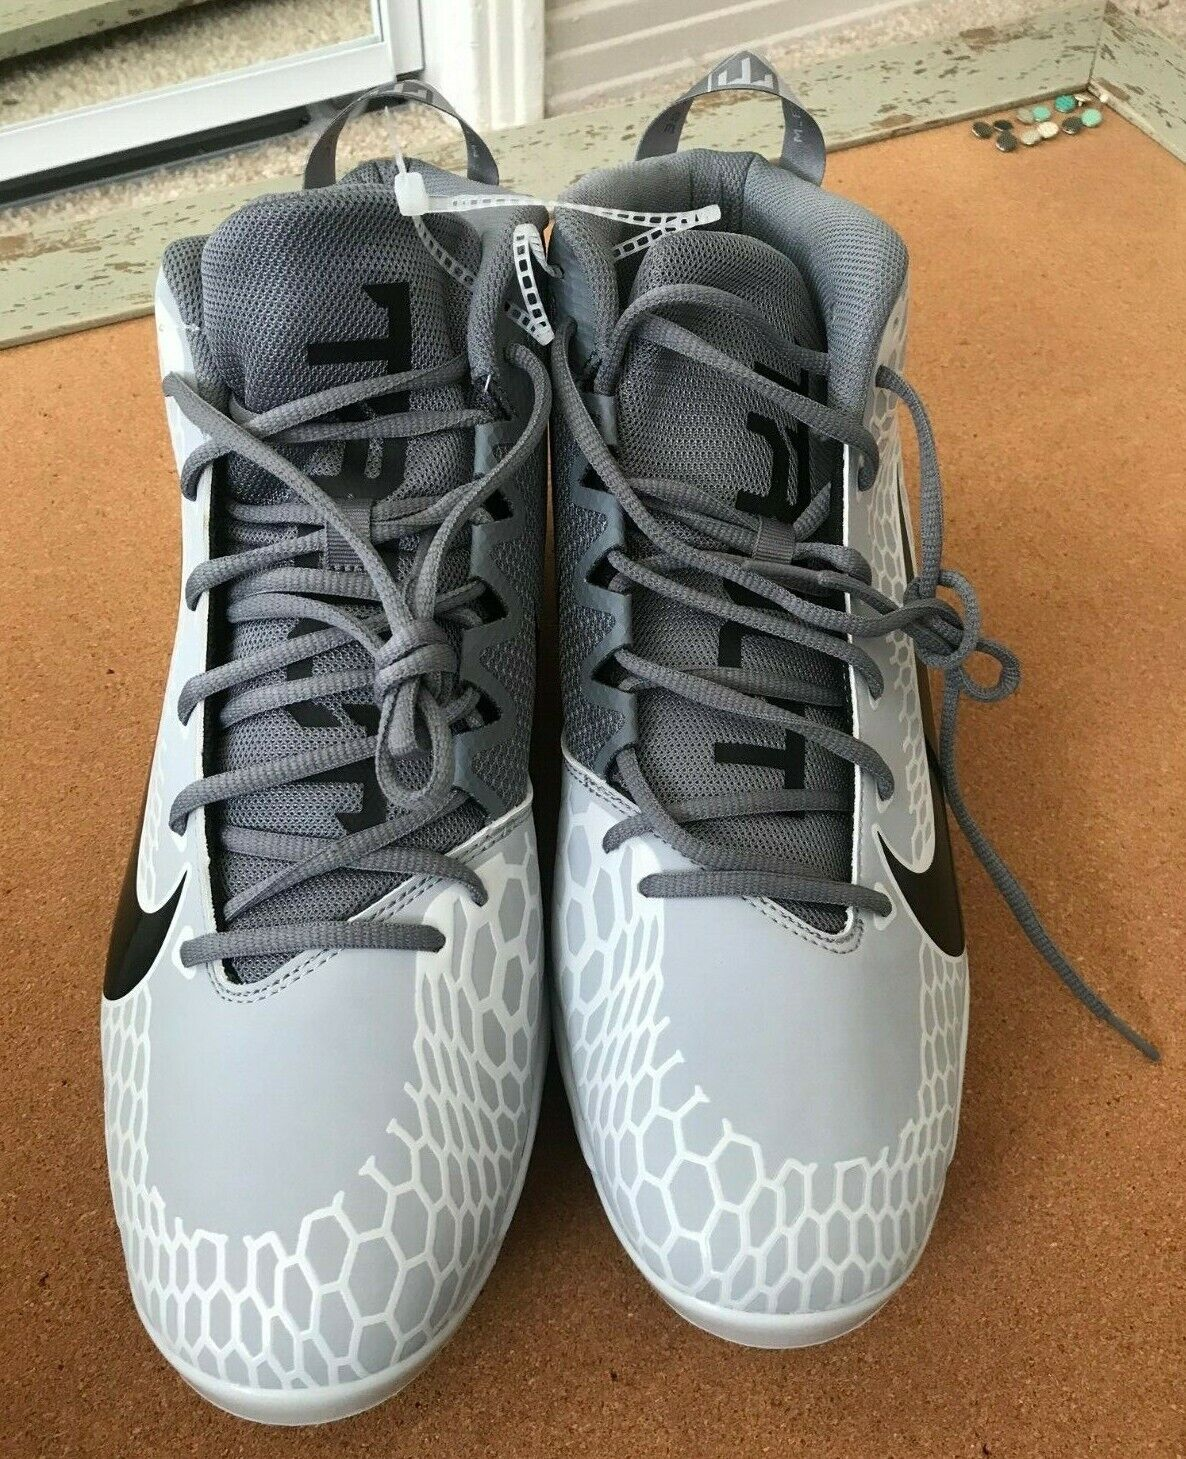 Nike Force Zoom Mike Trout 5 Mid Baseball Cleats Size 14 Gray AH3372-002 NEW 856 - $40.00